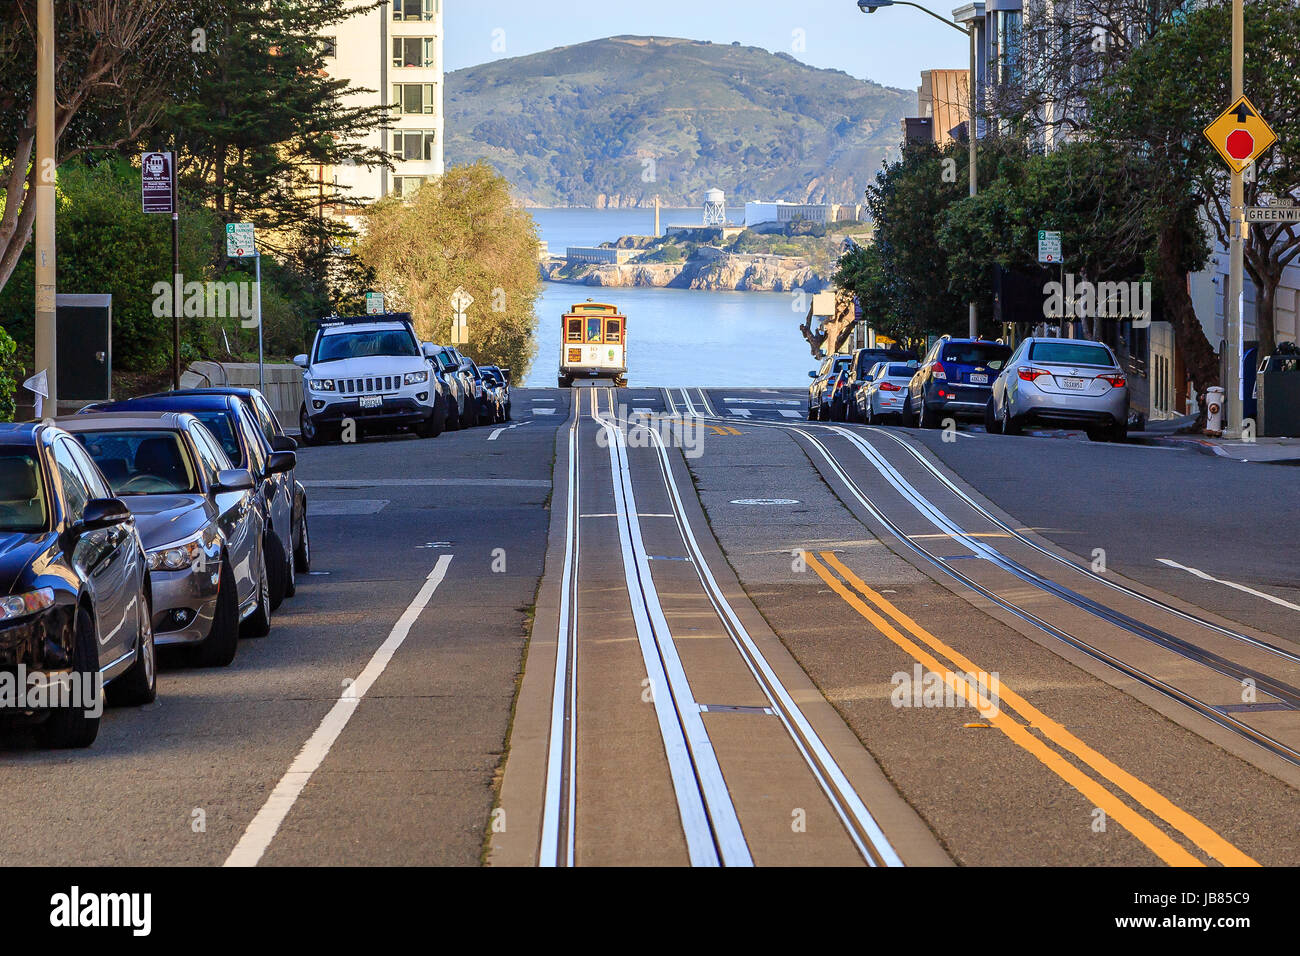 A cable car arriving at the top of a hill in San Francisco - Stock Image